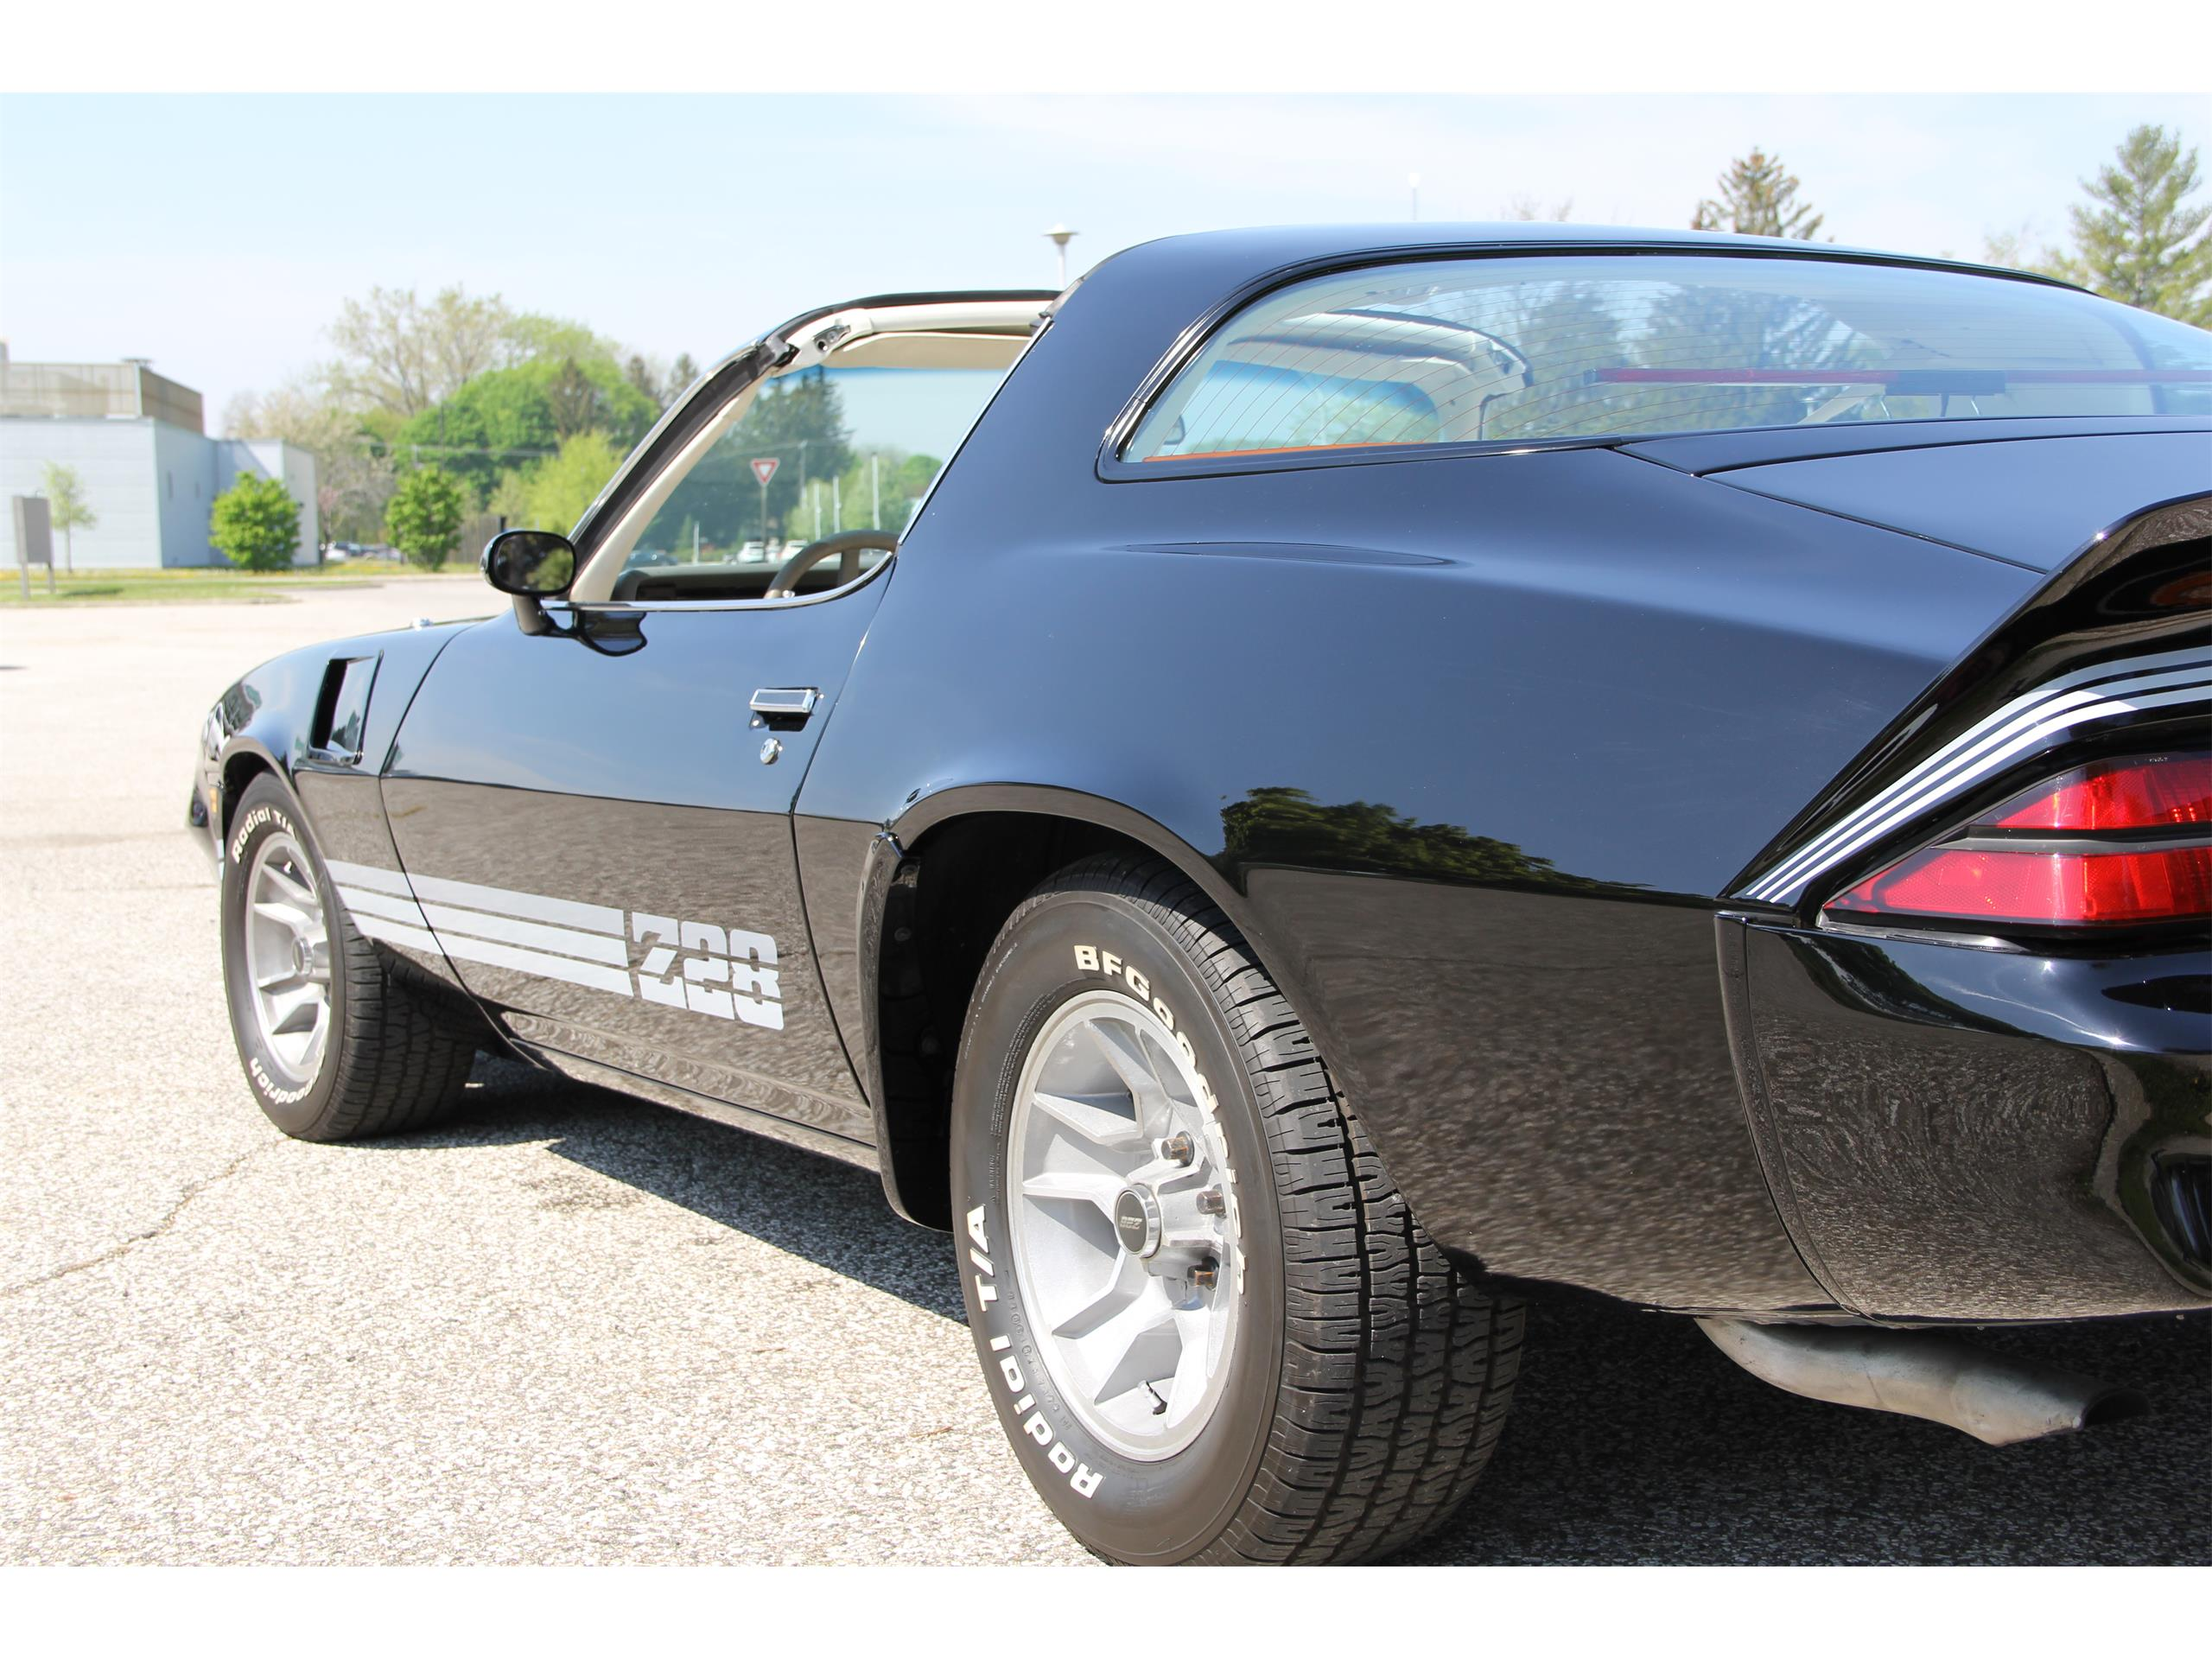 Camaro Insurance Cost >> 1980 Chevrolet Camaro Z28 for Sale | ClassicCars.com | CC-1135011